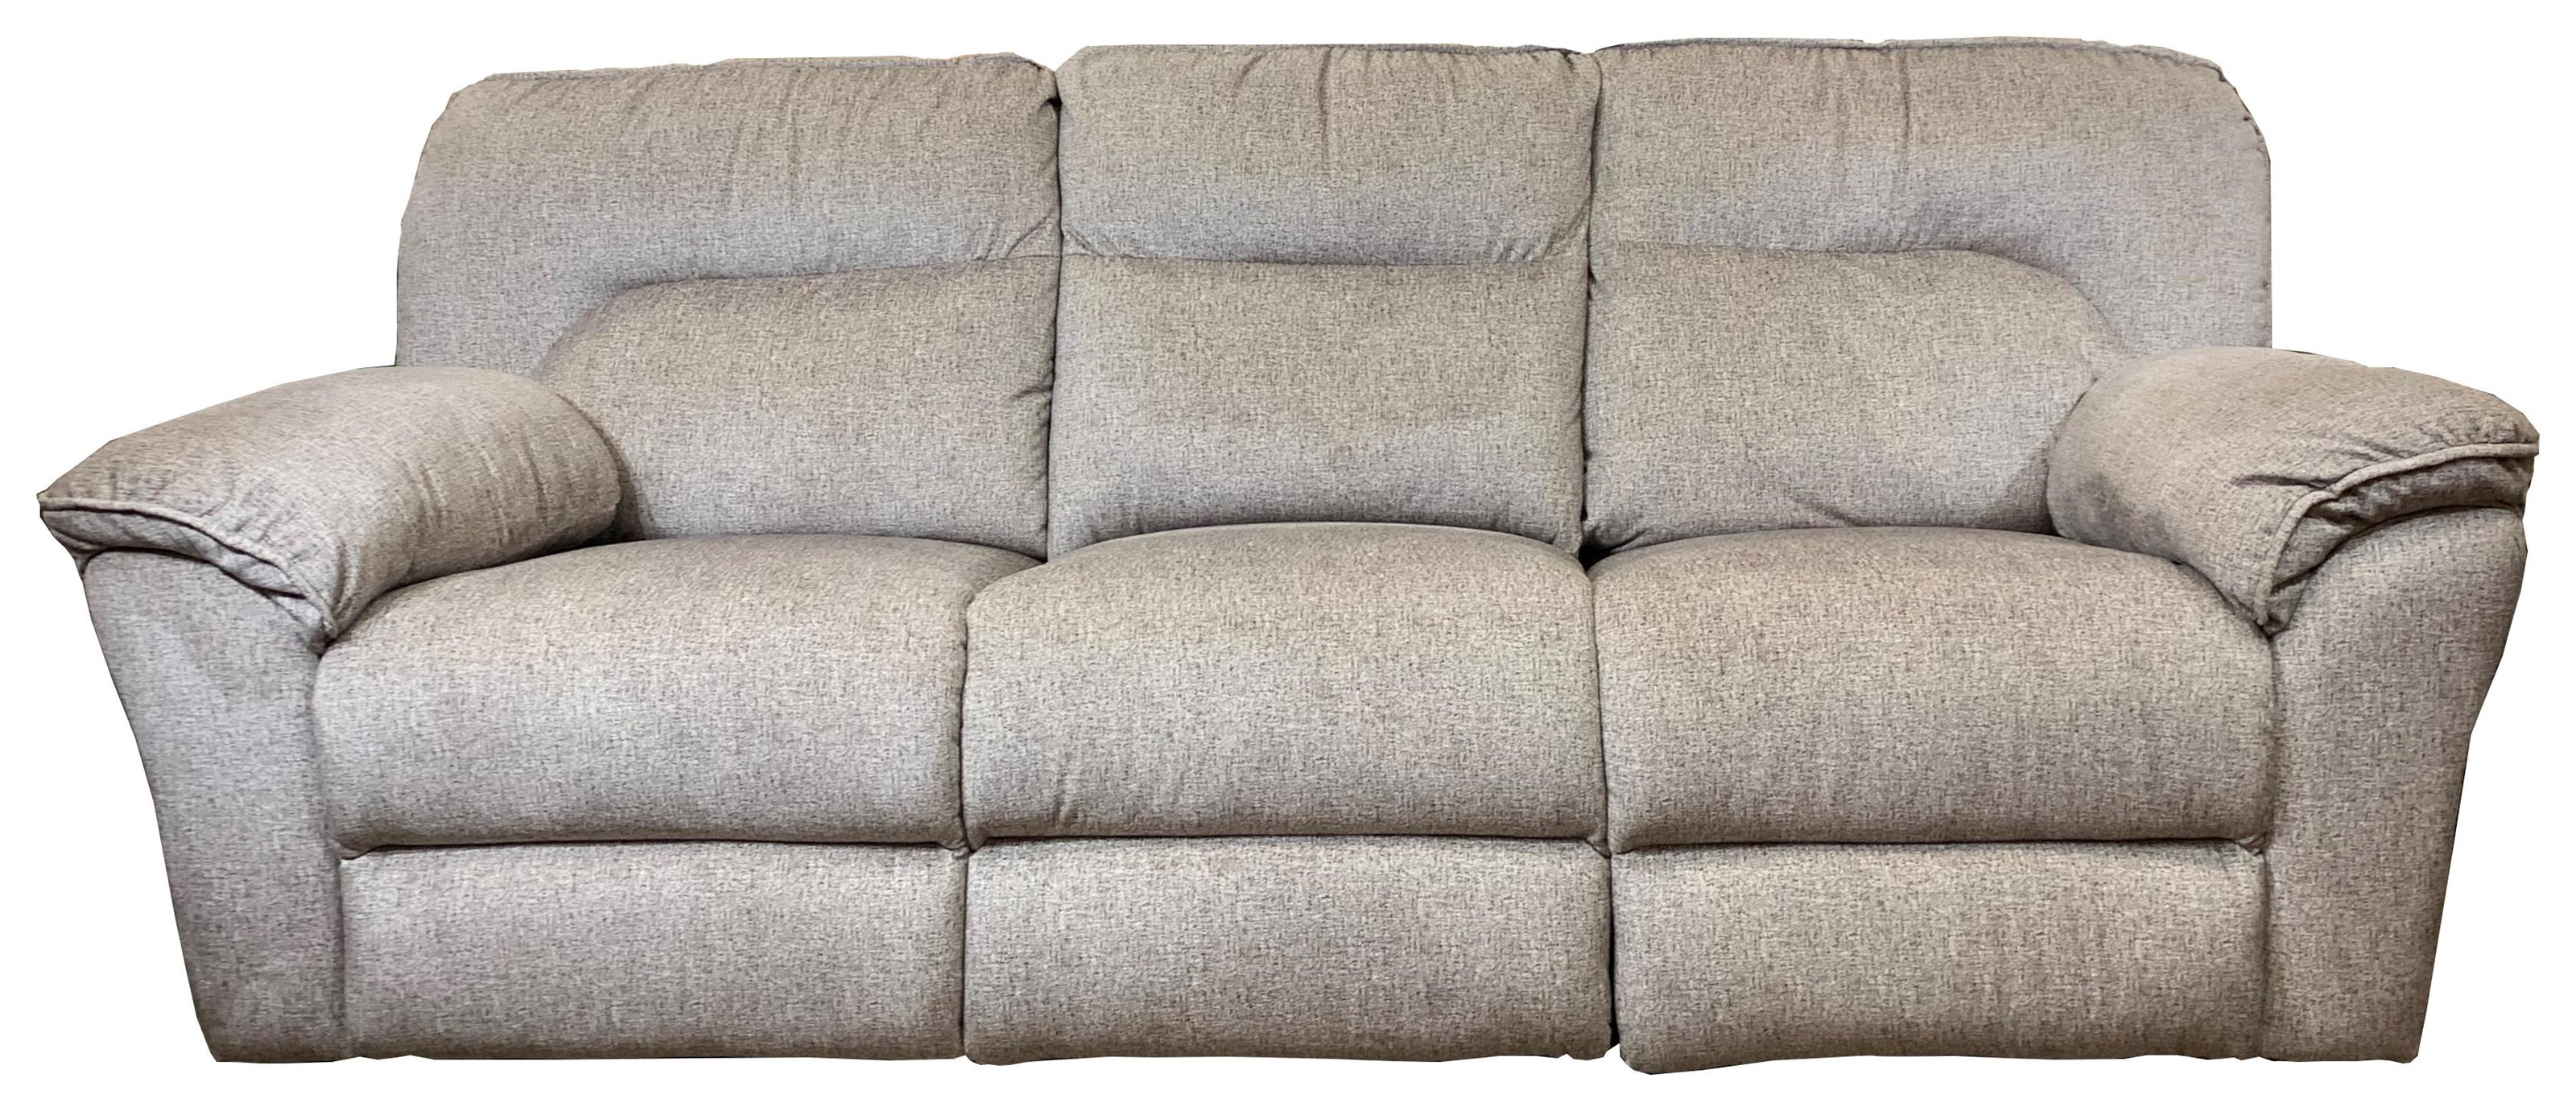 Picture of: Southern Motion Full Ride Casual Double Reclining Sofa With Dropdown Table Godby Home Furnishings Reclining Sofas